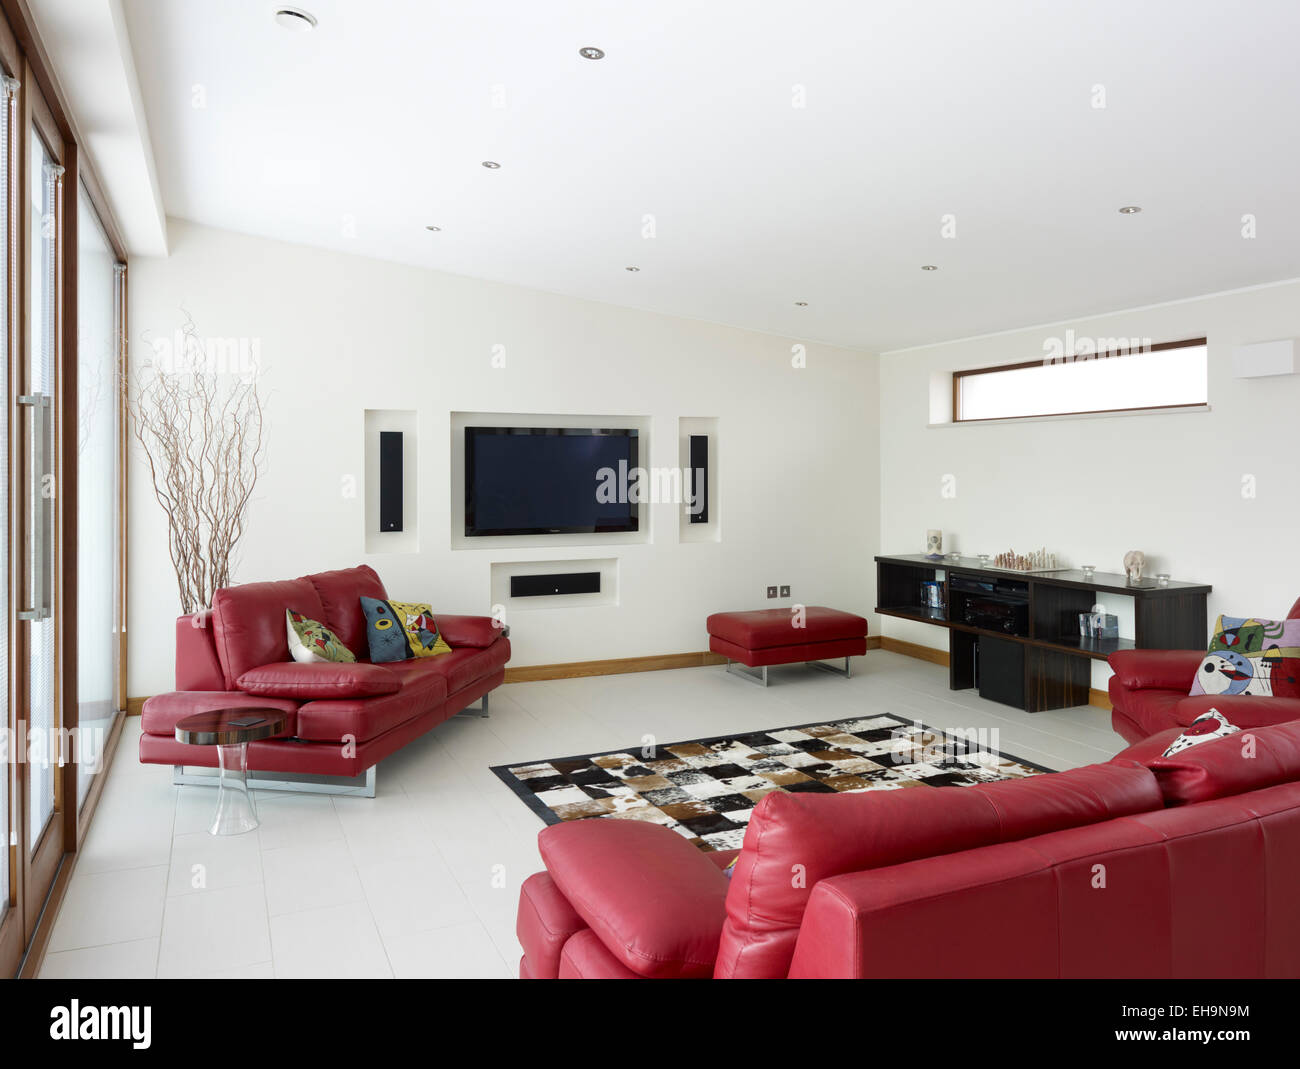 Modern Living Room With Red Leather Sofas And Built In Plasma Tv And Stock Photo Royalty Free